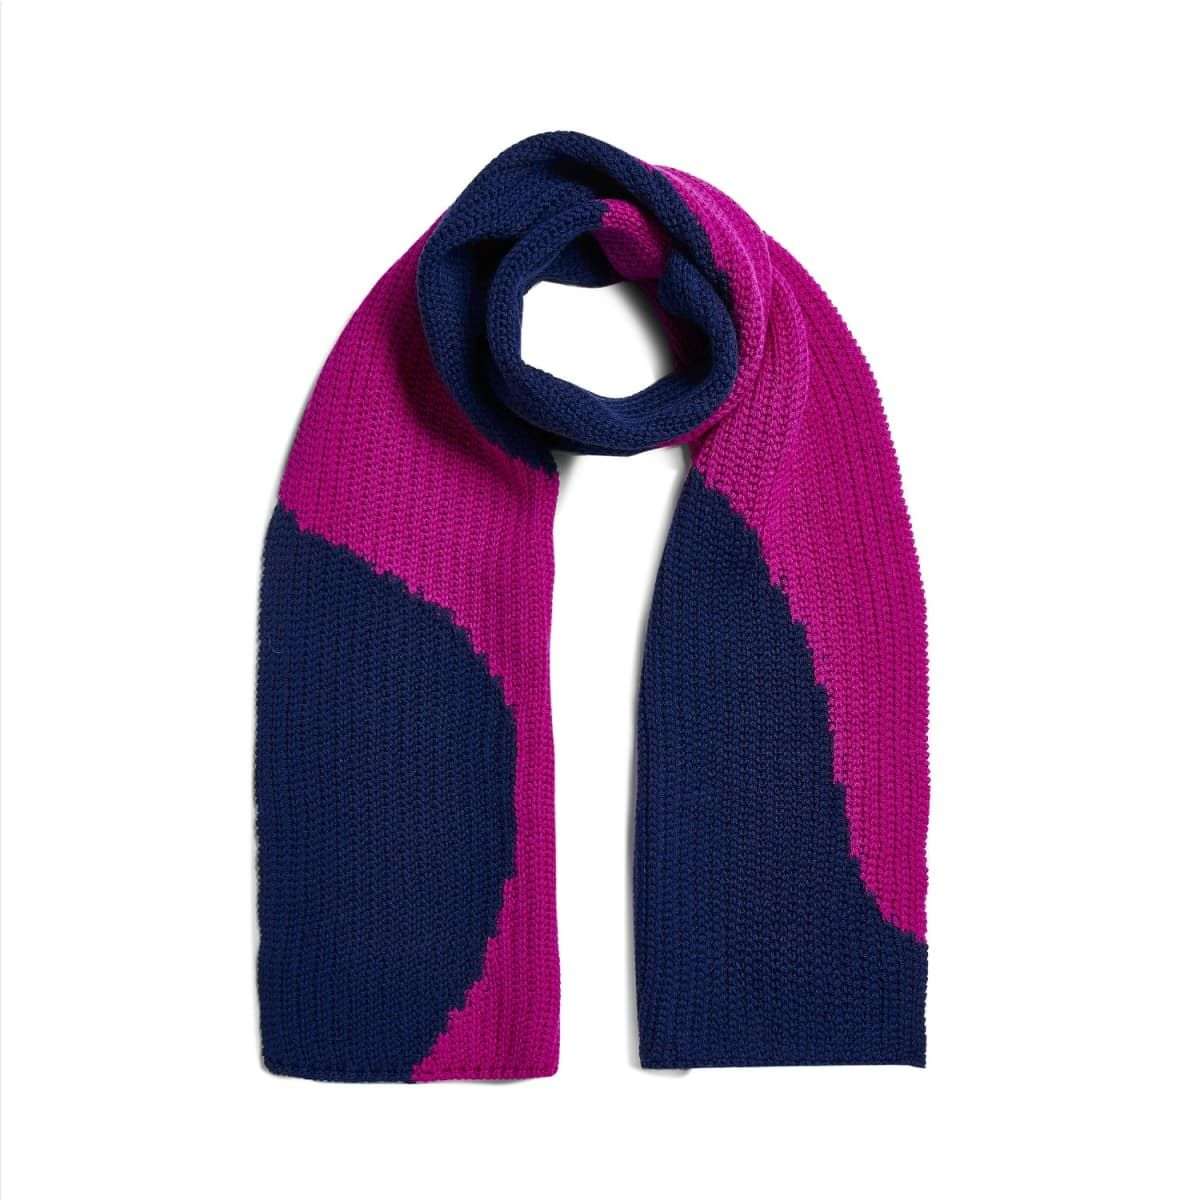 Far Out Merino Wool Scarf